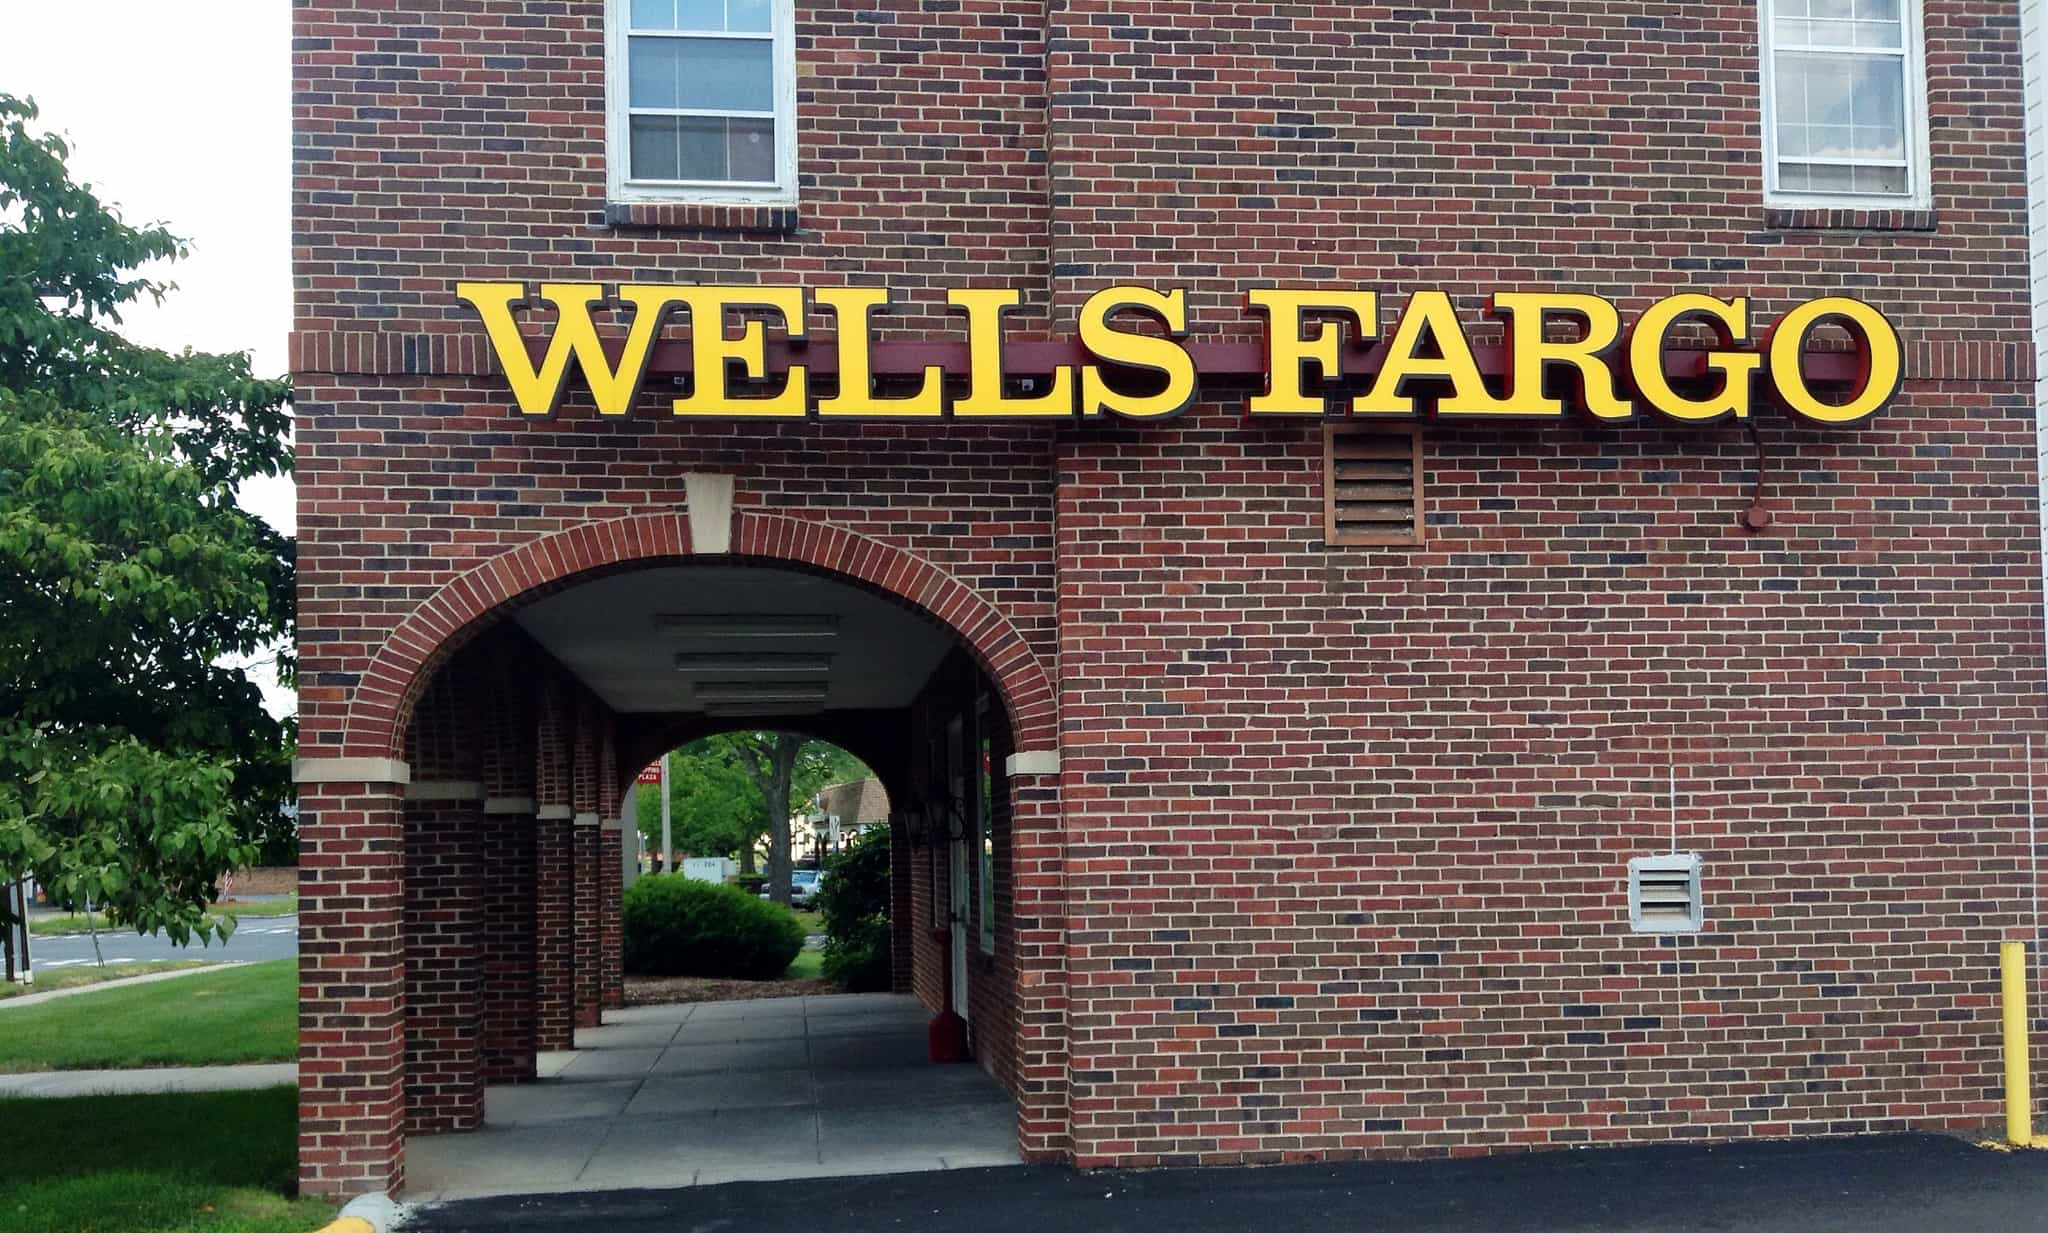 Wells Fargo is embracing Apple Pay at its ATMs.